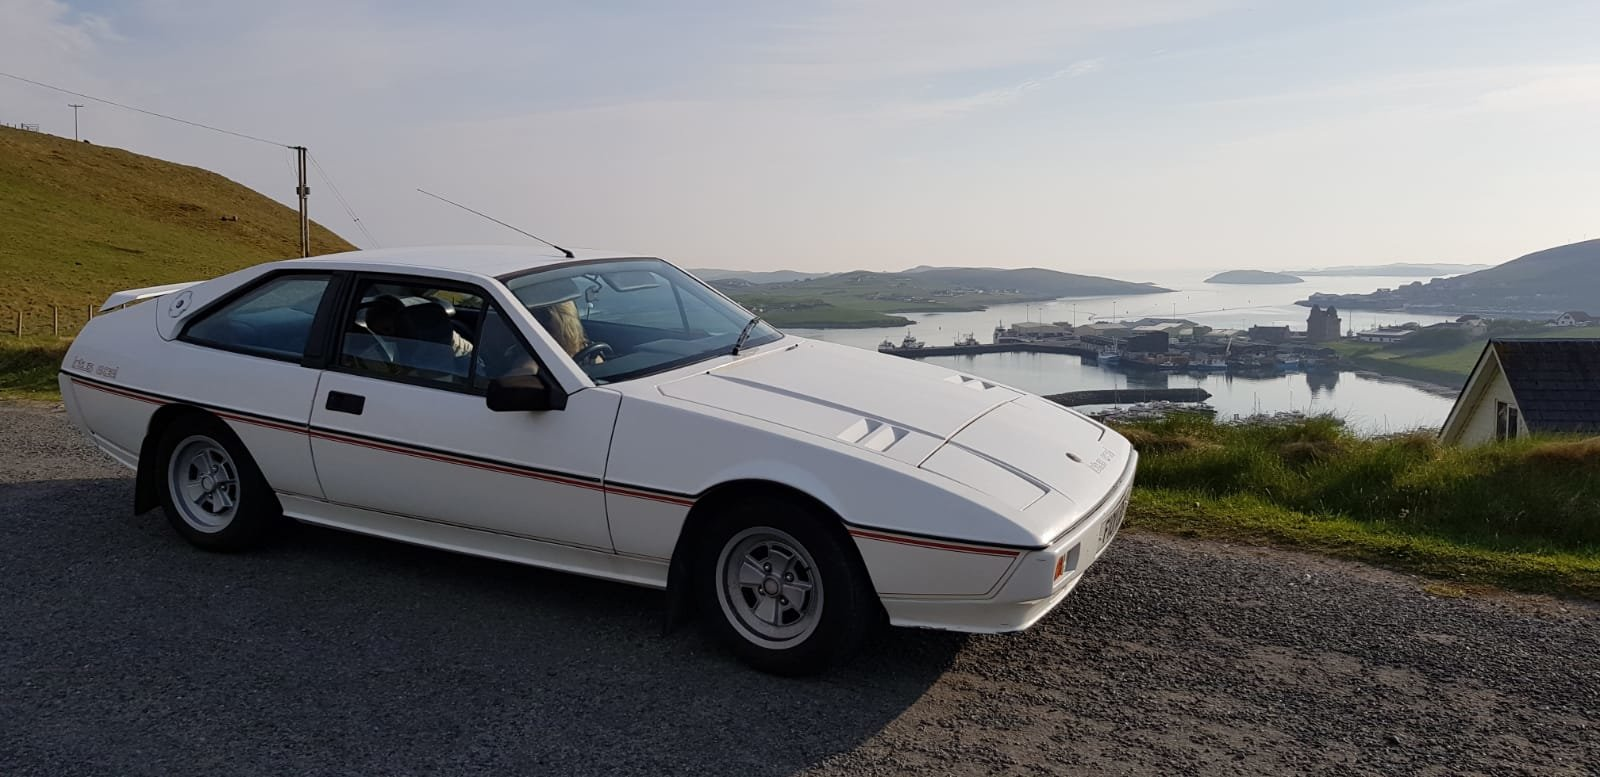 1989 Lotus Excel  For Sale (picture 1 of 5)